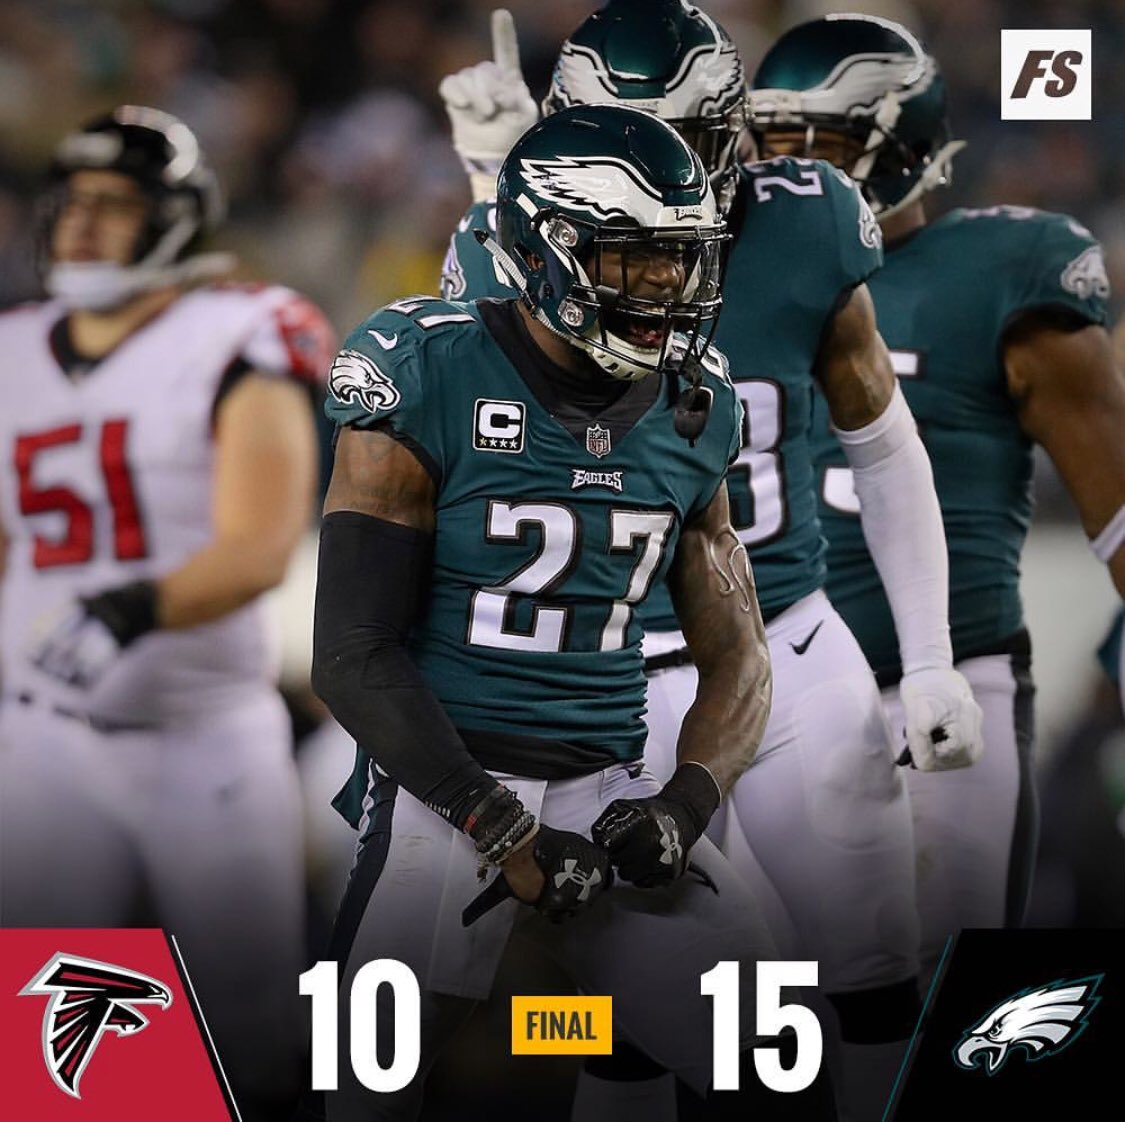 �� #FlyEaglesFly #GangGreen https://t.co/n6R3uC3I7h